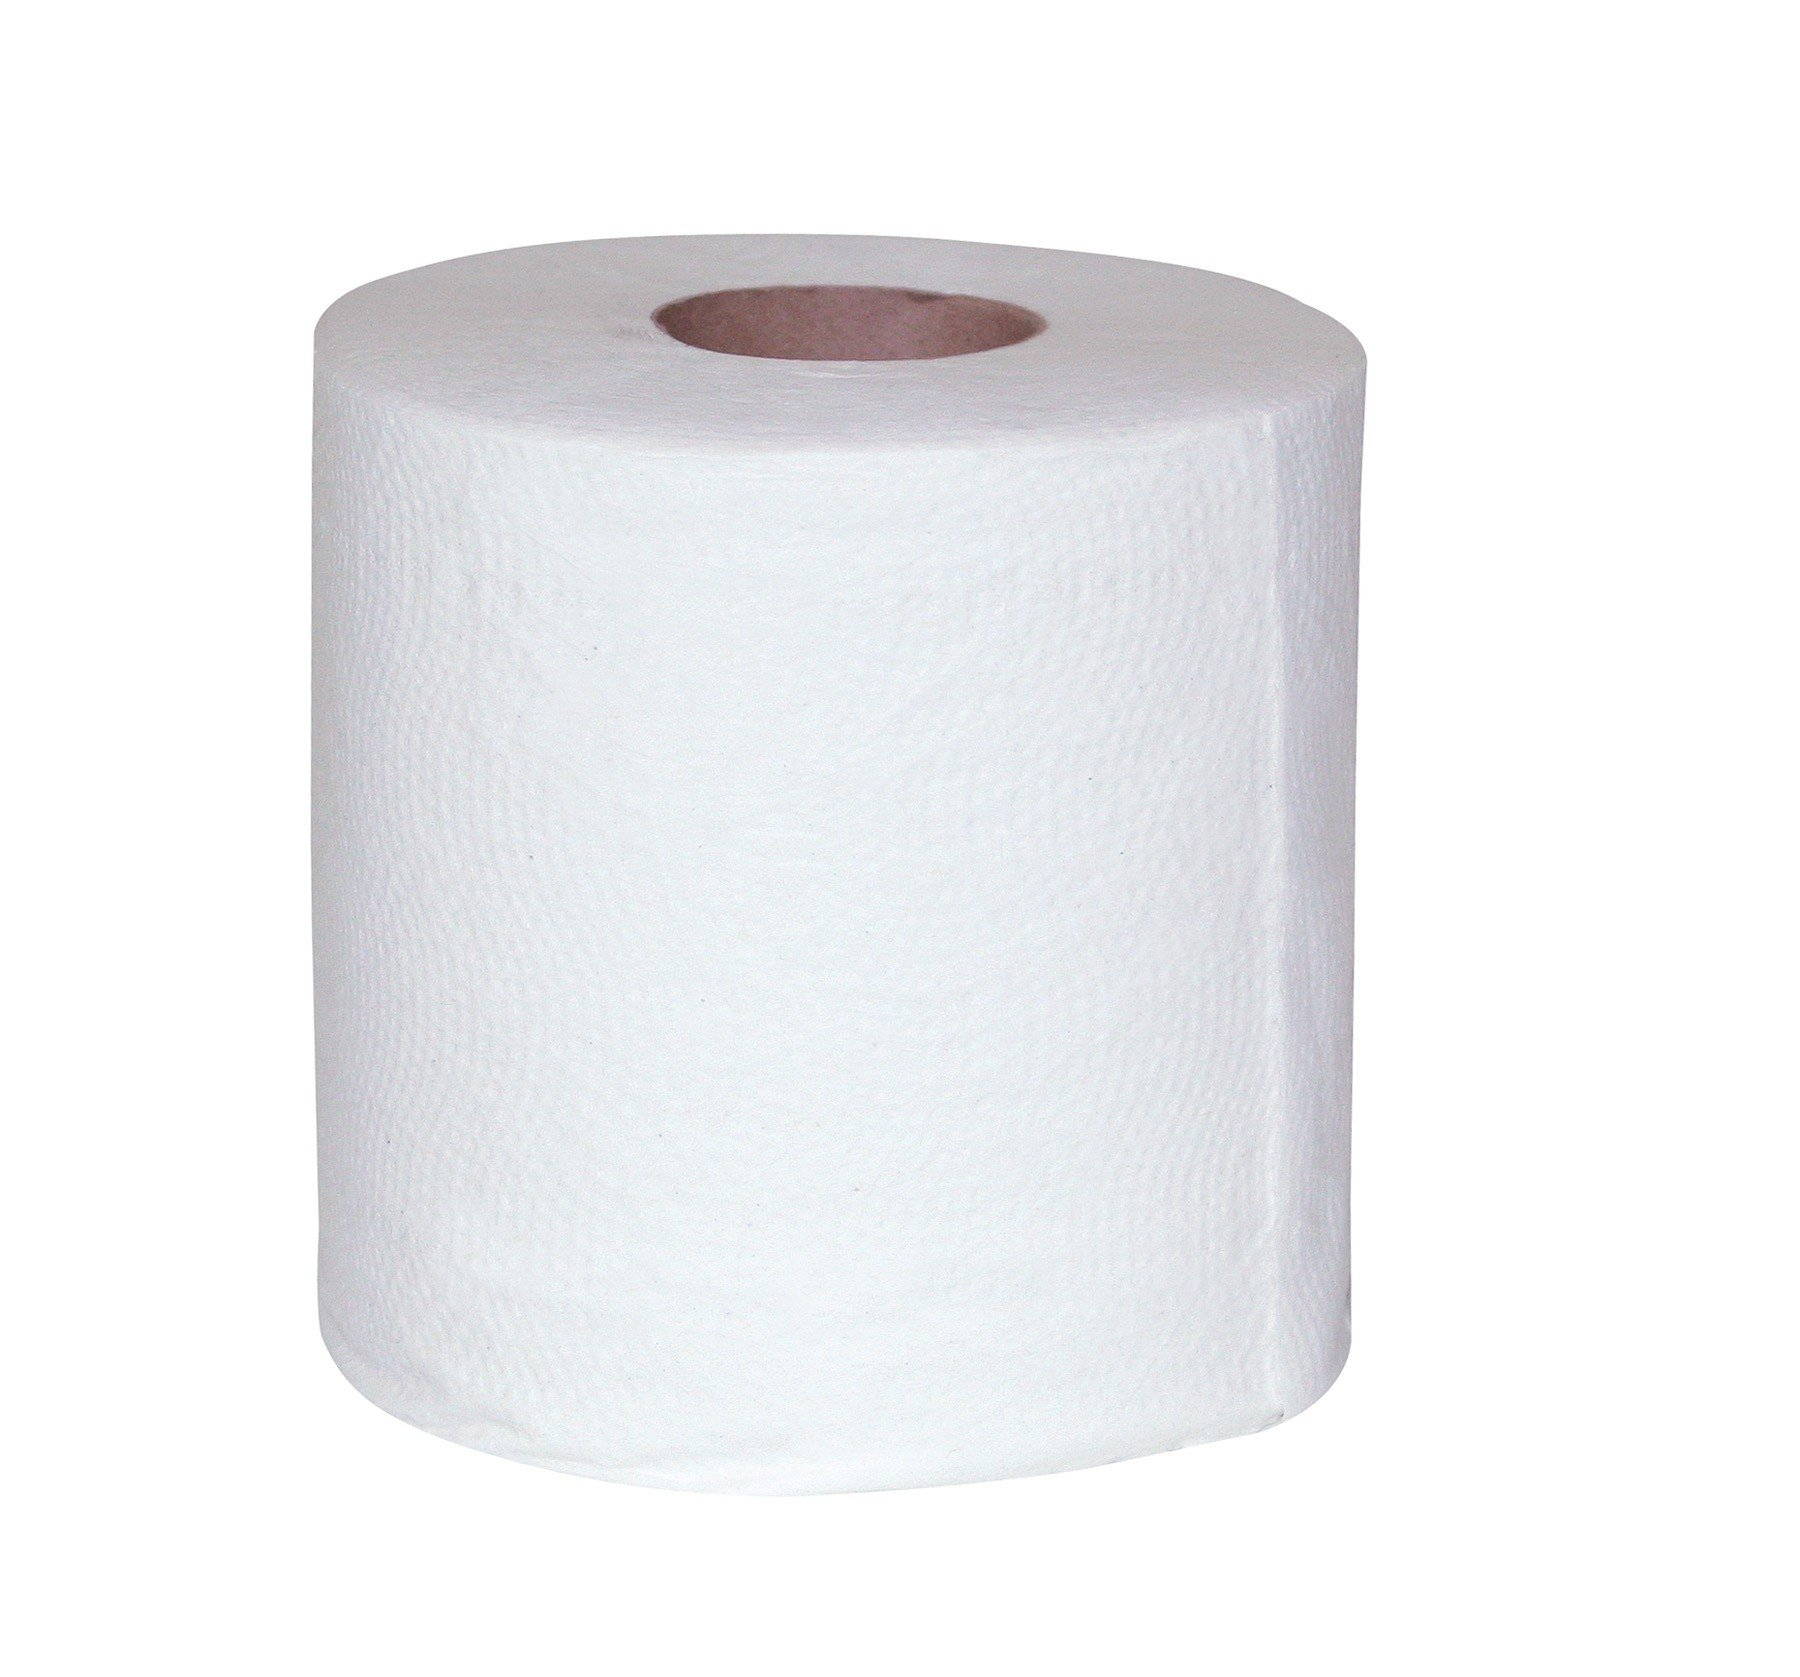 Advantage 2-Ply Toilet Tissue (Pack of 96)